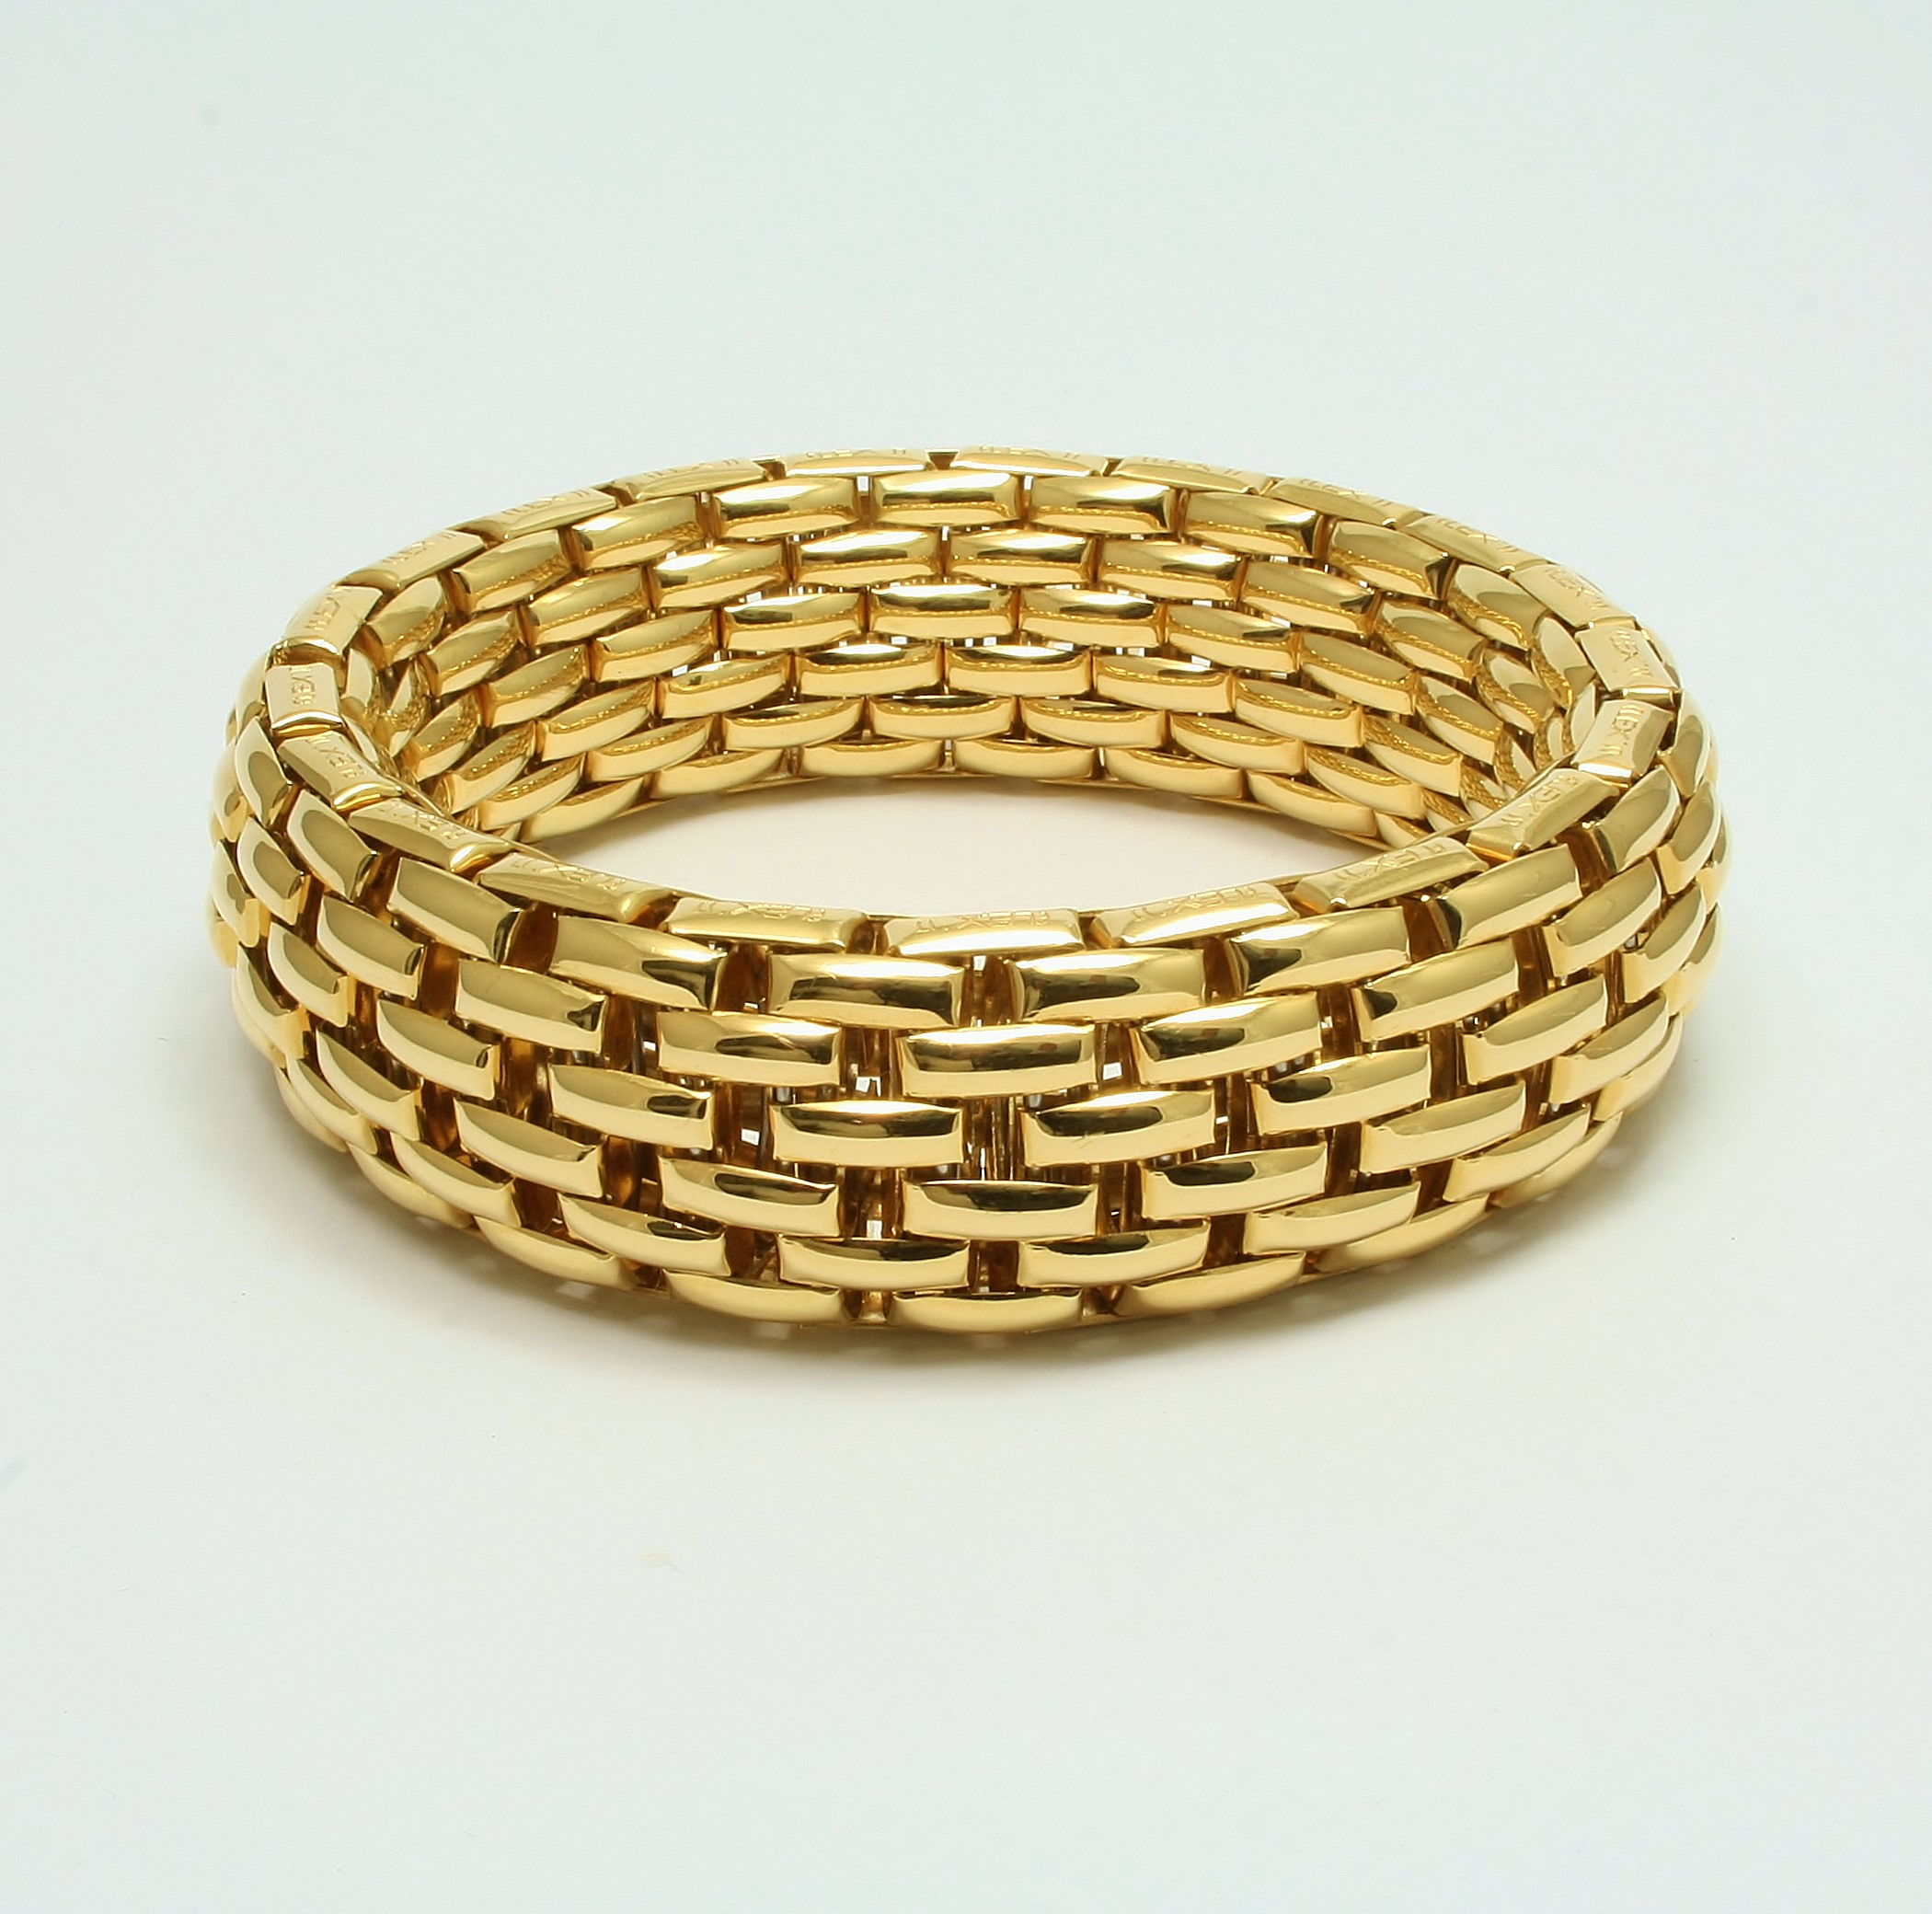 jewelry from men personality link com alibaba aliexpress carat group s chain gold on item accessories bracelets in karat